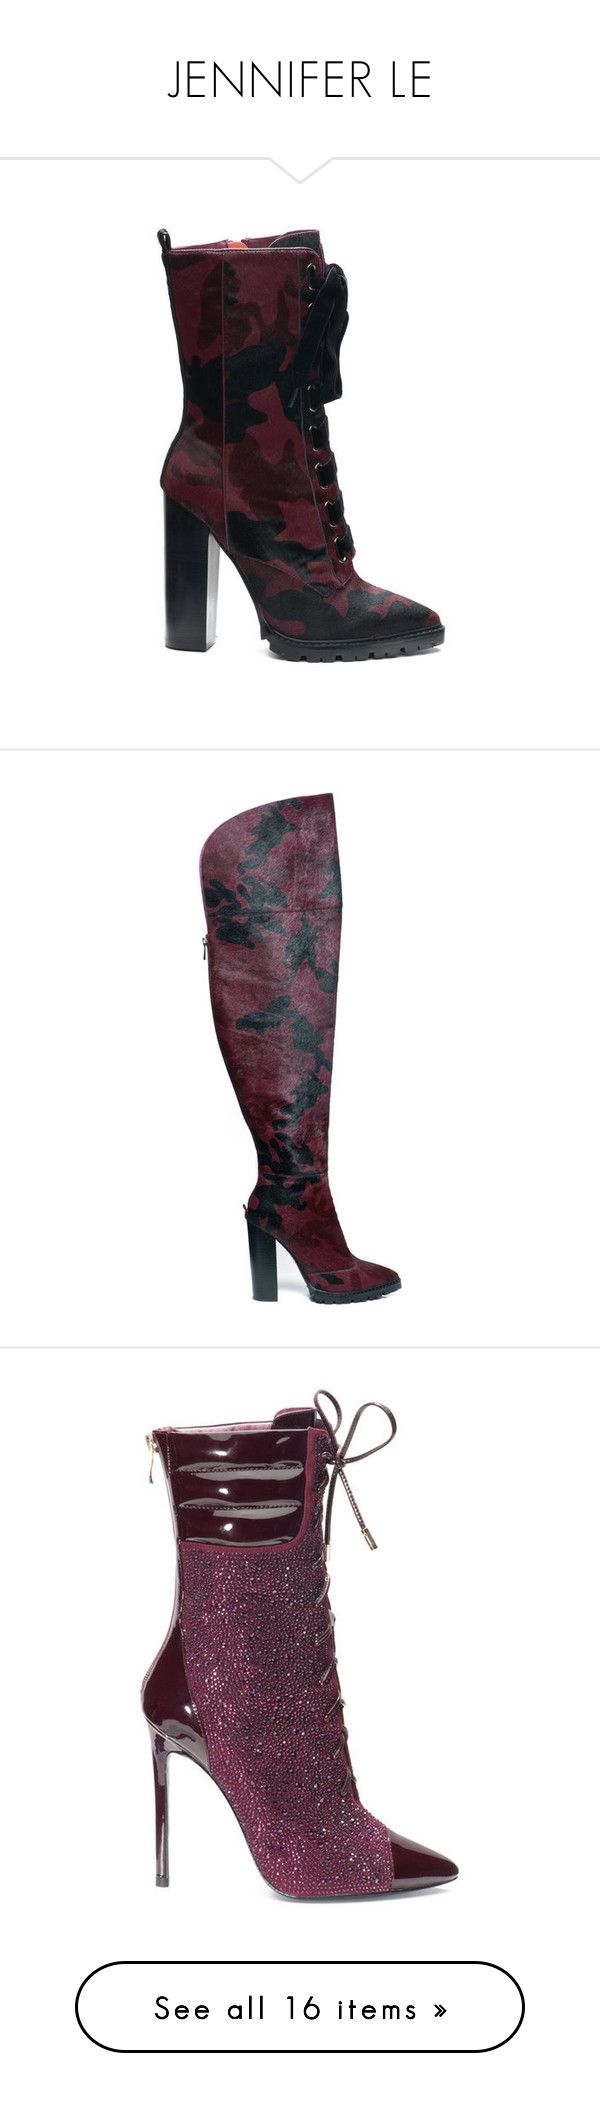 """JENNIFER LE"" by larryisreal123 ❤ liked on Polyvore featuring shoes, patent leather shoes, laced up shoes, high heeled footwear, pointy toe shoes, patent shoes, camo shoes, camo print shoes, high heel shoes and camo high heels shoes"